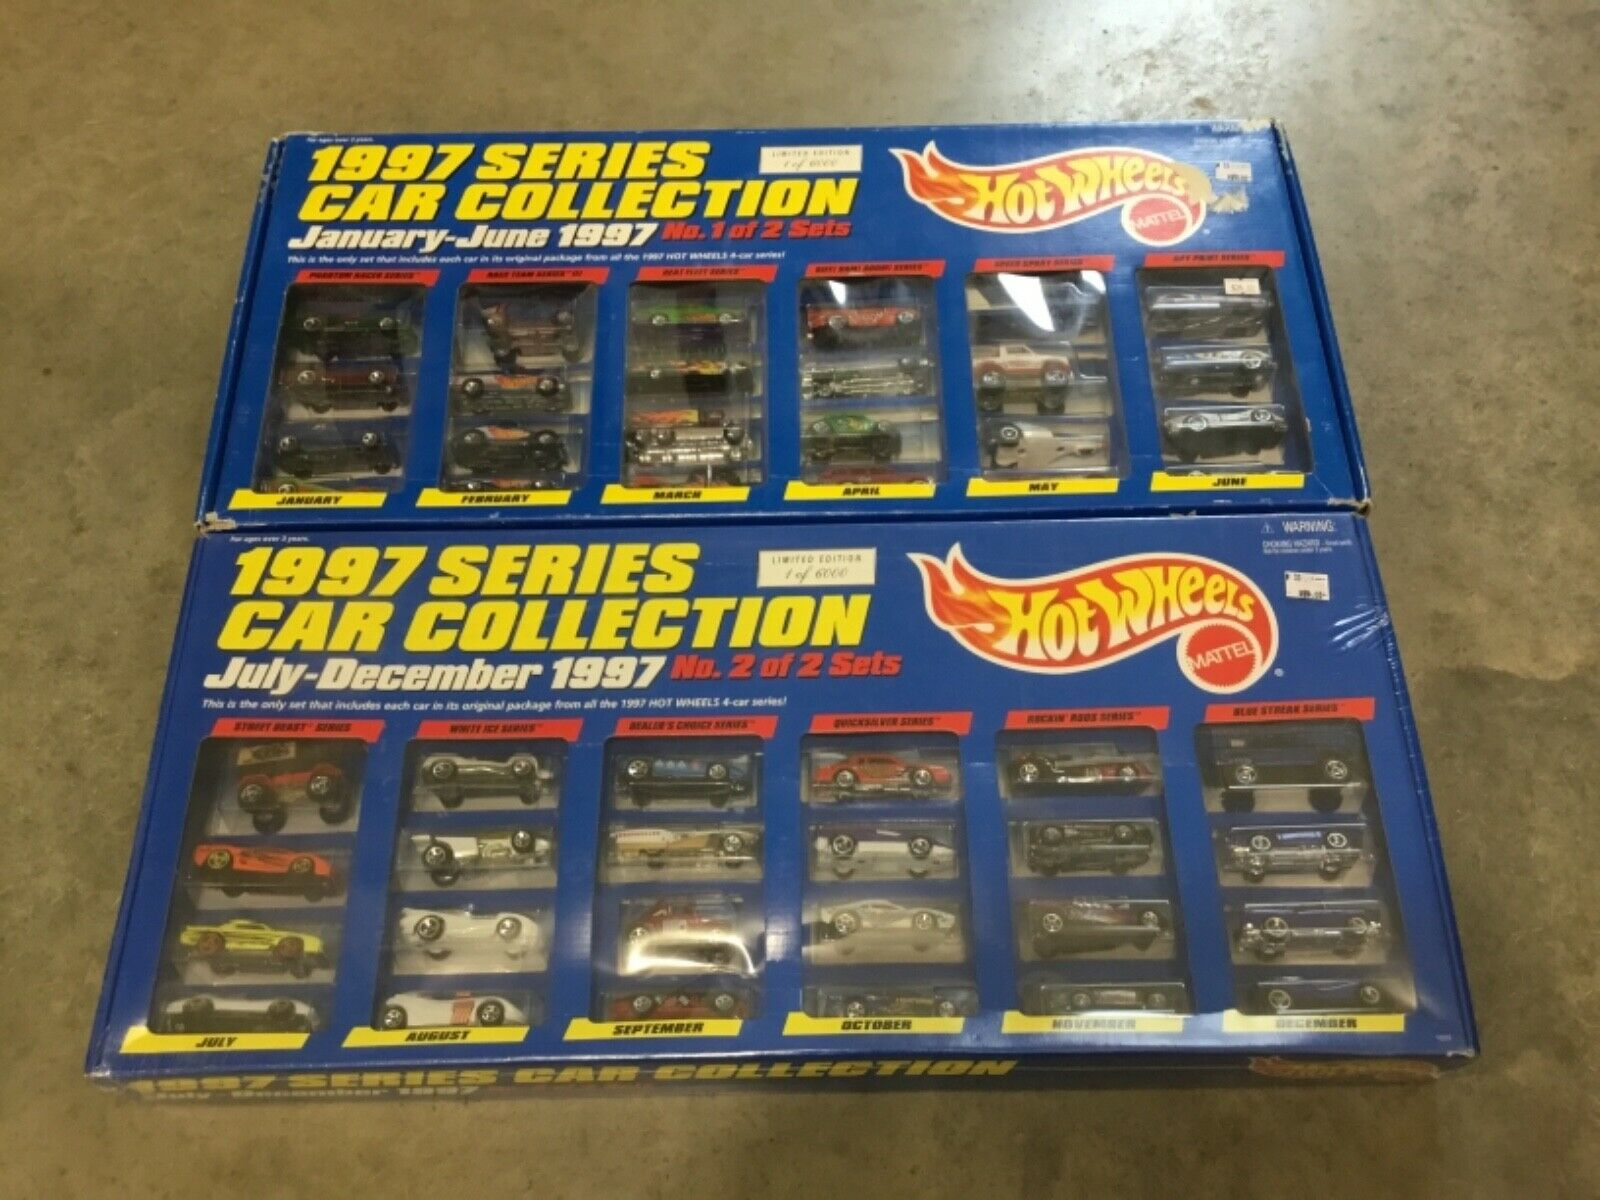 Hot Wheels Ltd Ed 1997 Series Car Collection 1 & 2  sets, FREE shipping